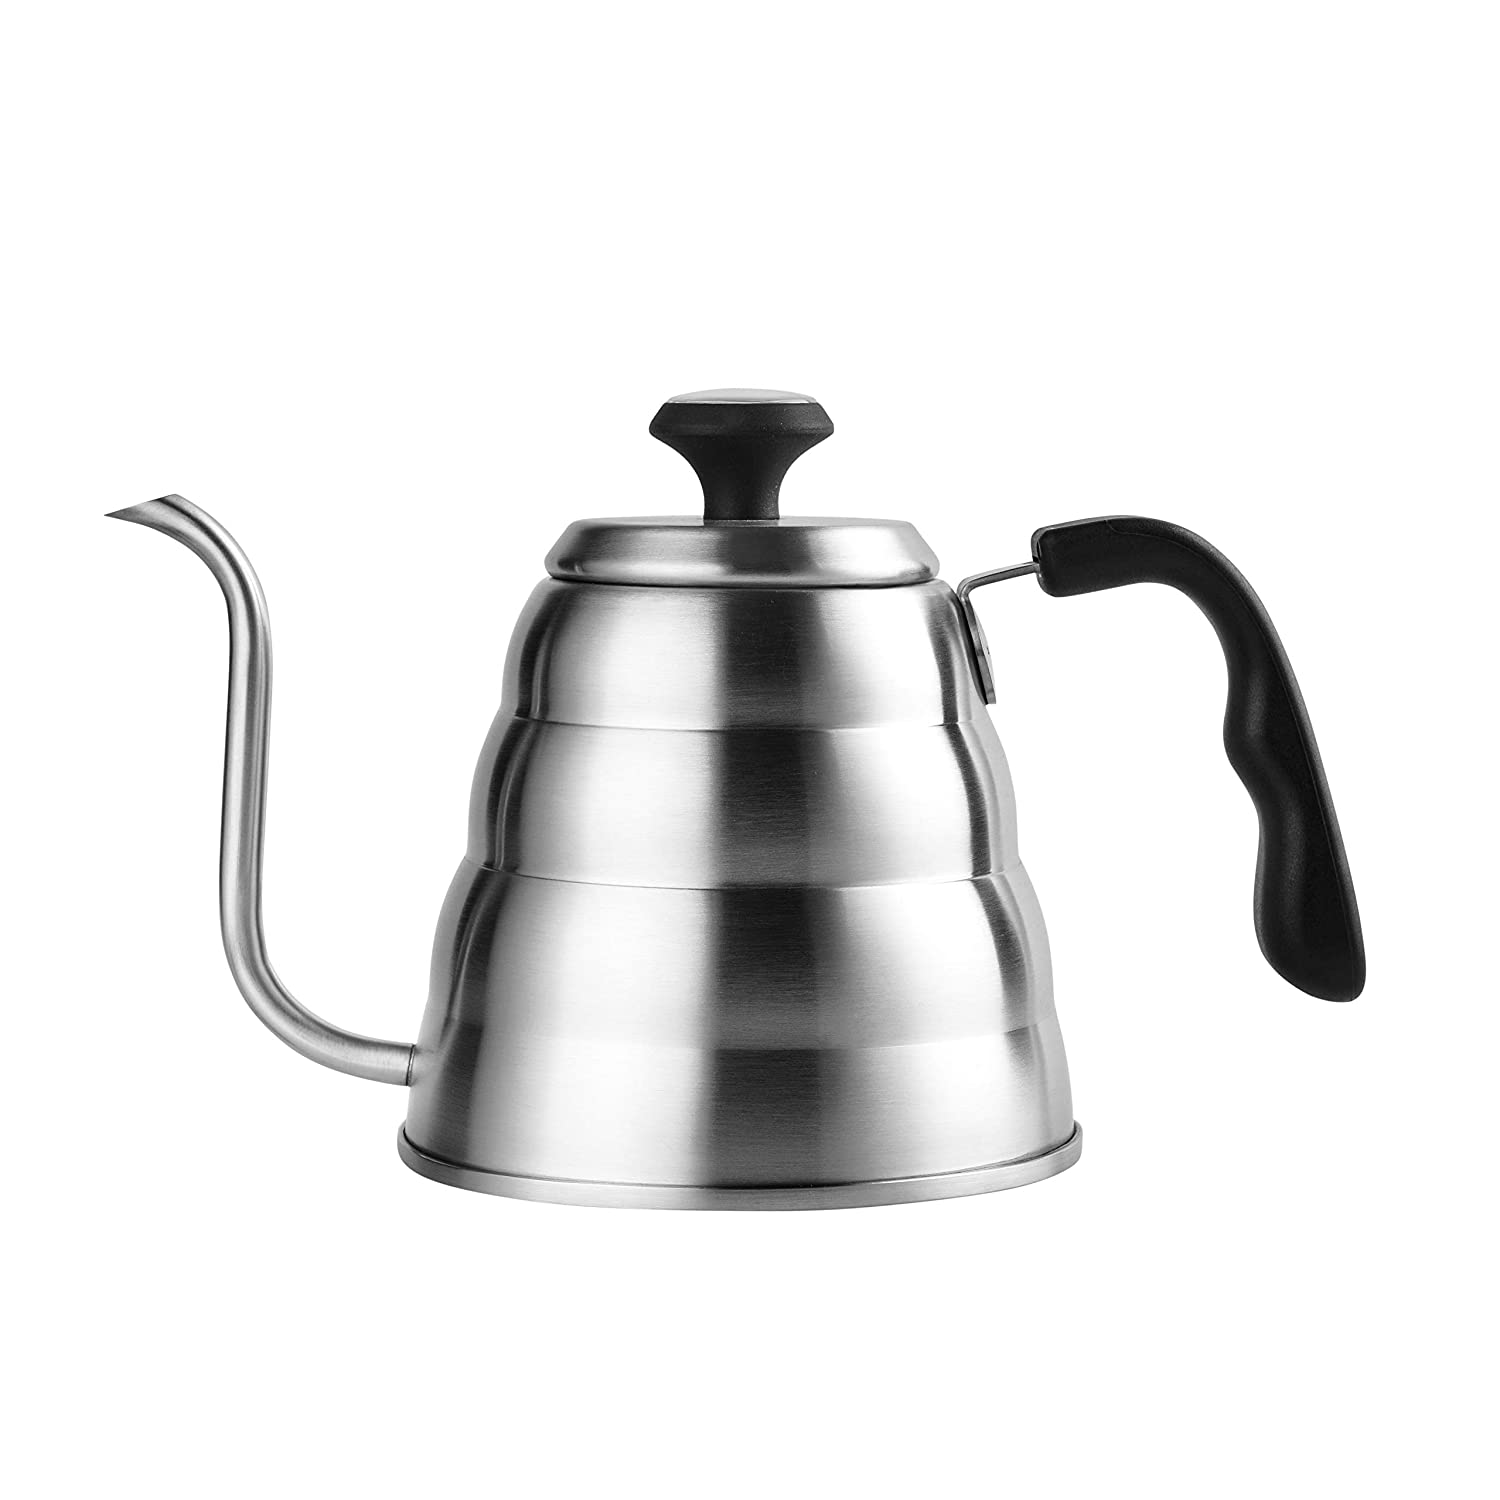 Gooseneck Pour Over Coffee Kettle with Rugged Waterproof Thermometer by KitchenMO-4ofloz/1.2 Liters-Surgical Stainless Steel Spout 0.8mm Thickness-tough Handle-Ergonomic Lid with Double Lock System